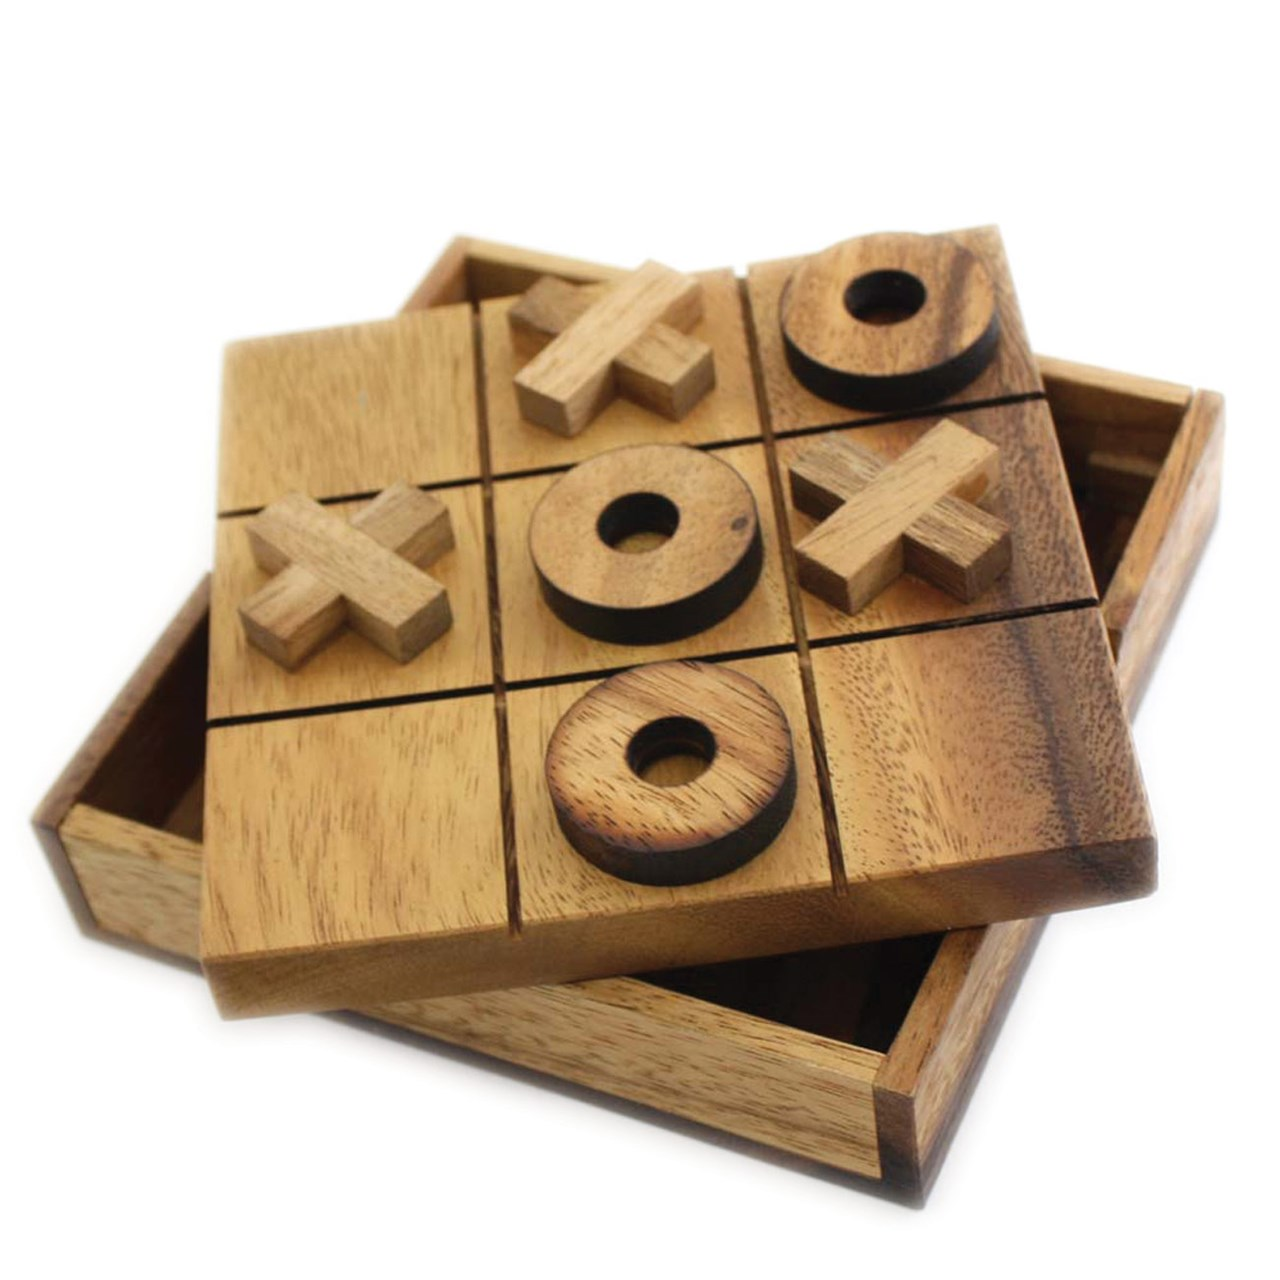 Tic Tac Toe Tactile Wooden Game